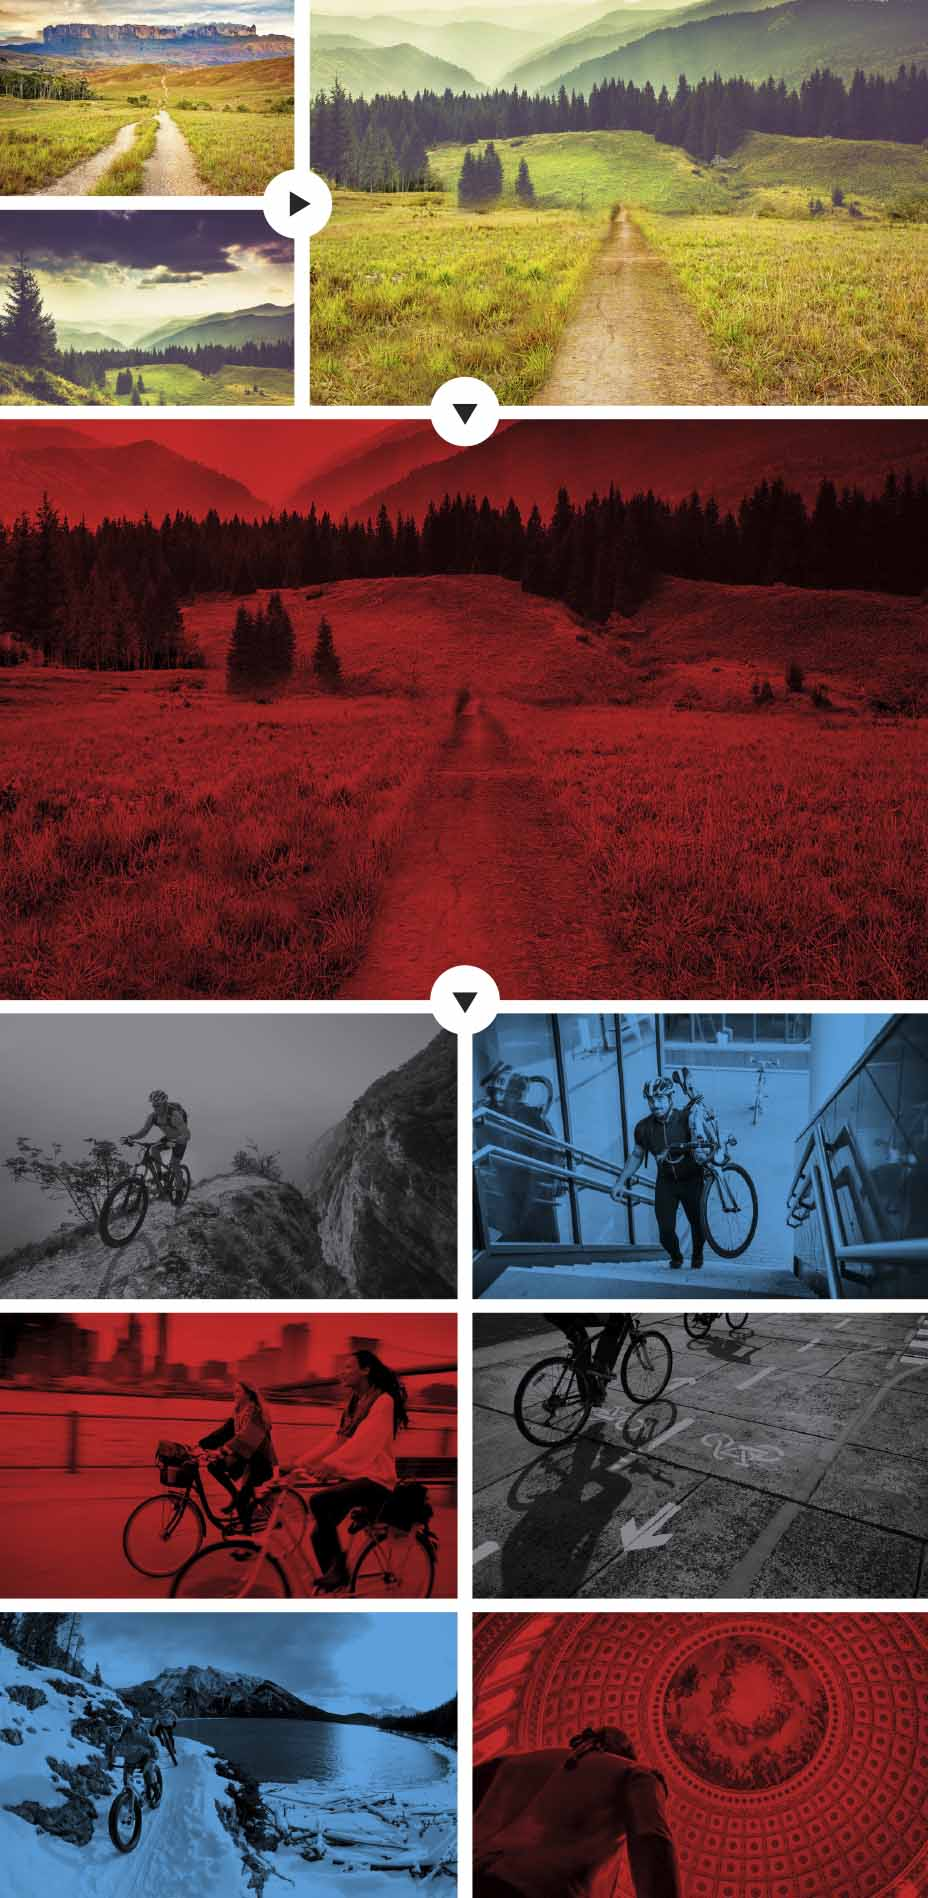 Each image on the site has been crafted to the overall look of the People for Bikes brand. Many images are seamlessly assembled from multiple source images to create the perfect context for telling the People for Bikes story.